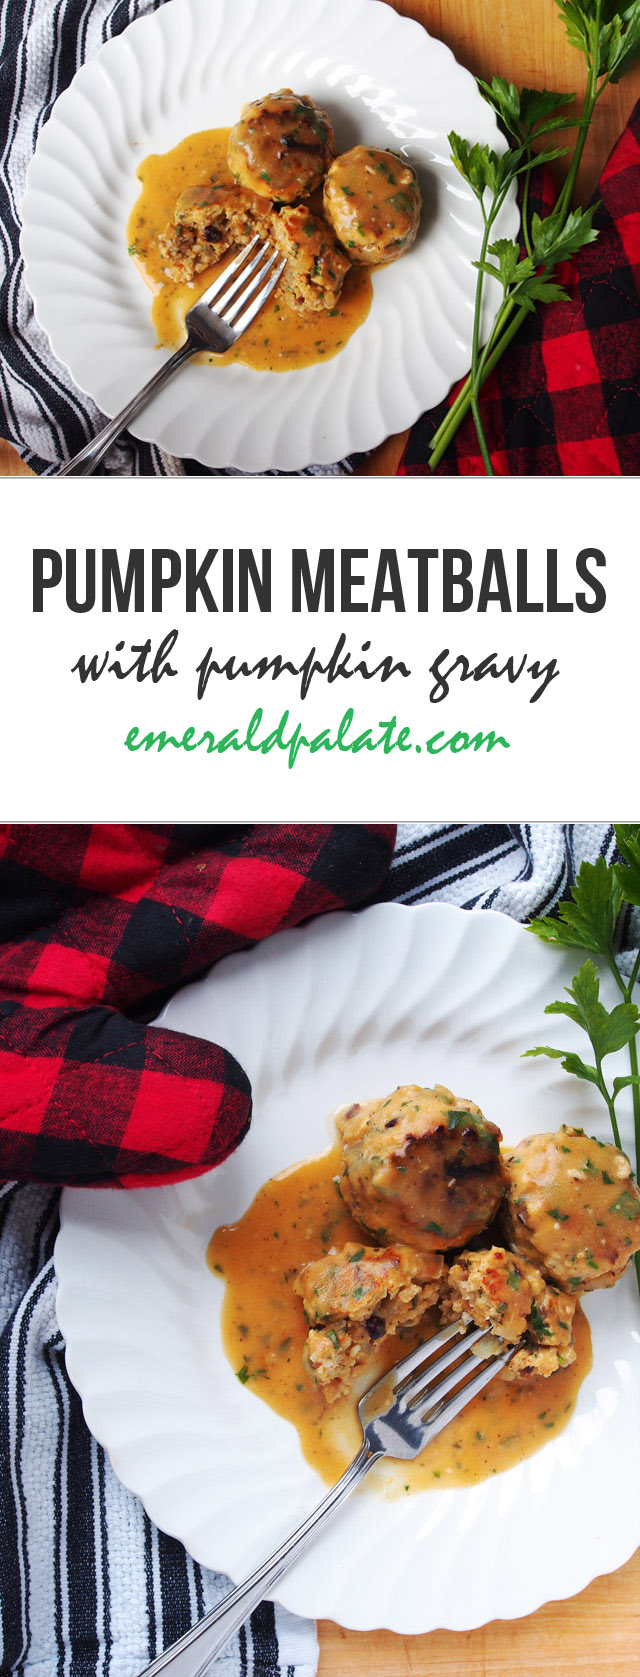 Looking for a pumpkin recipe? Try these easy pumpkin meatballs and pumpkin gravy. It tastes like fall!